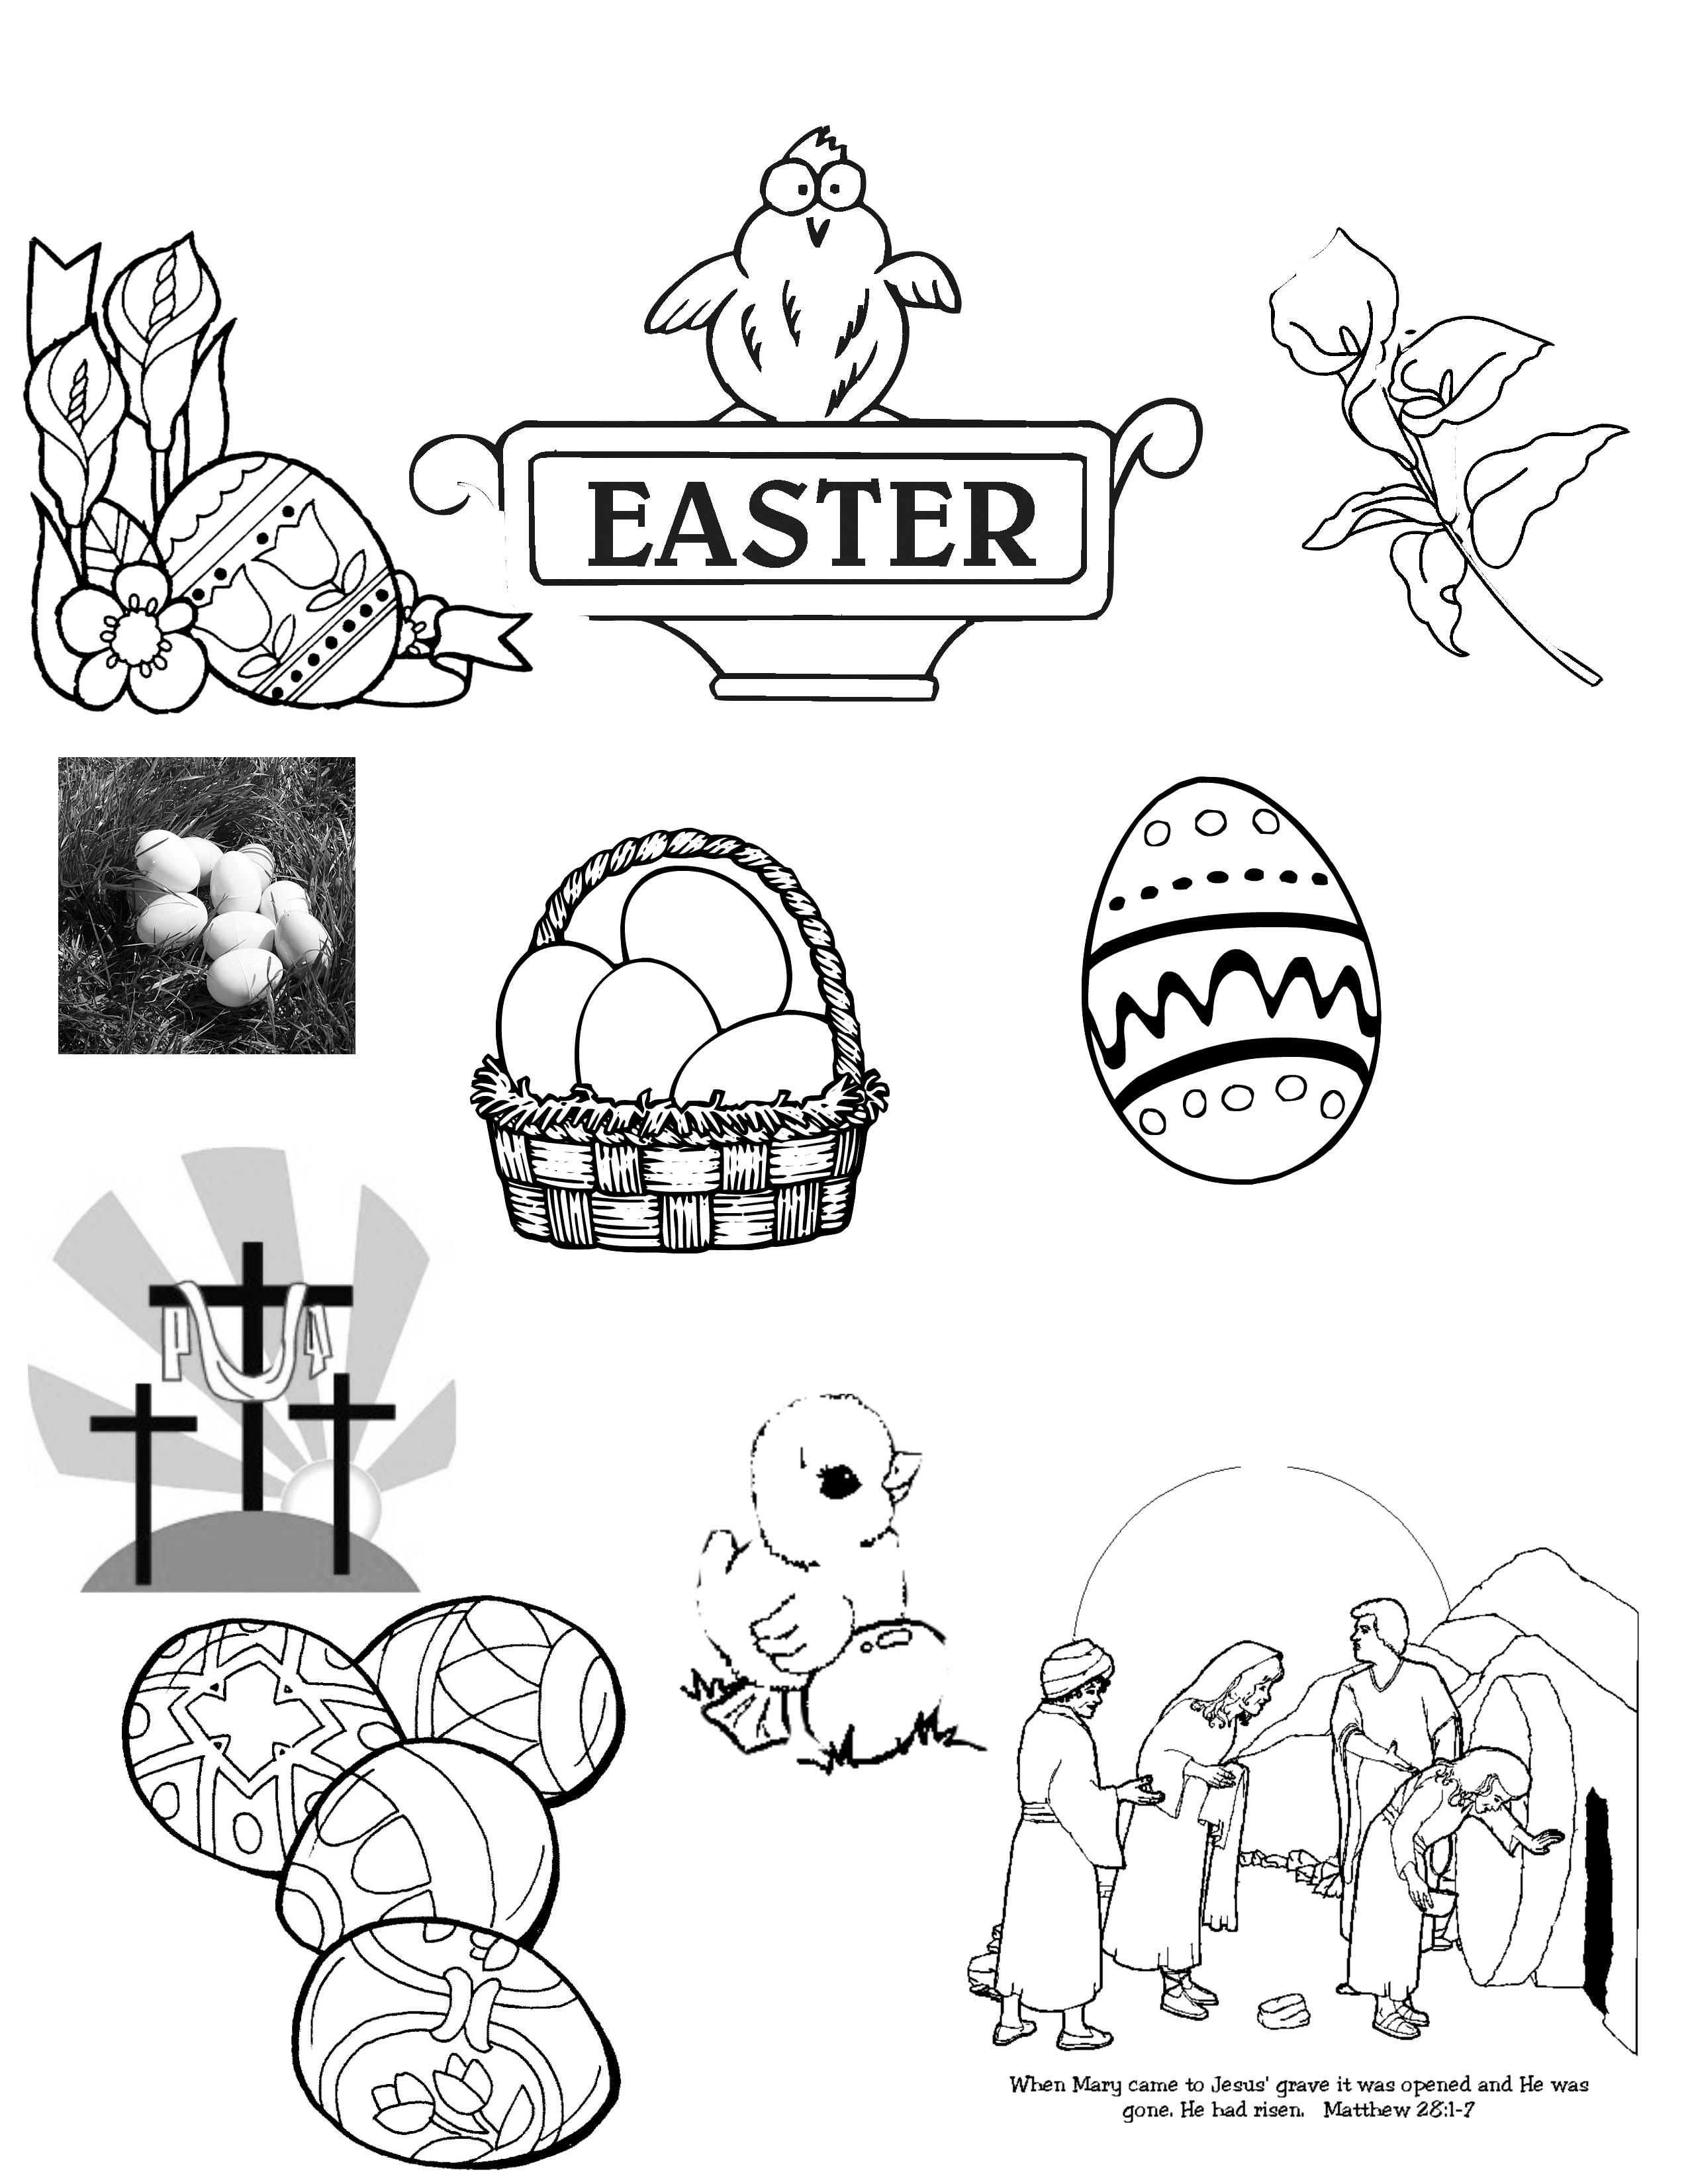 Easter Photoshop Brushes by Loganzw